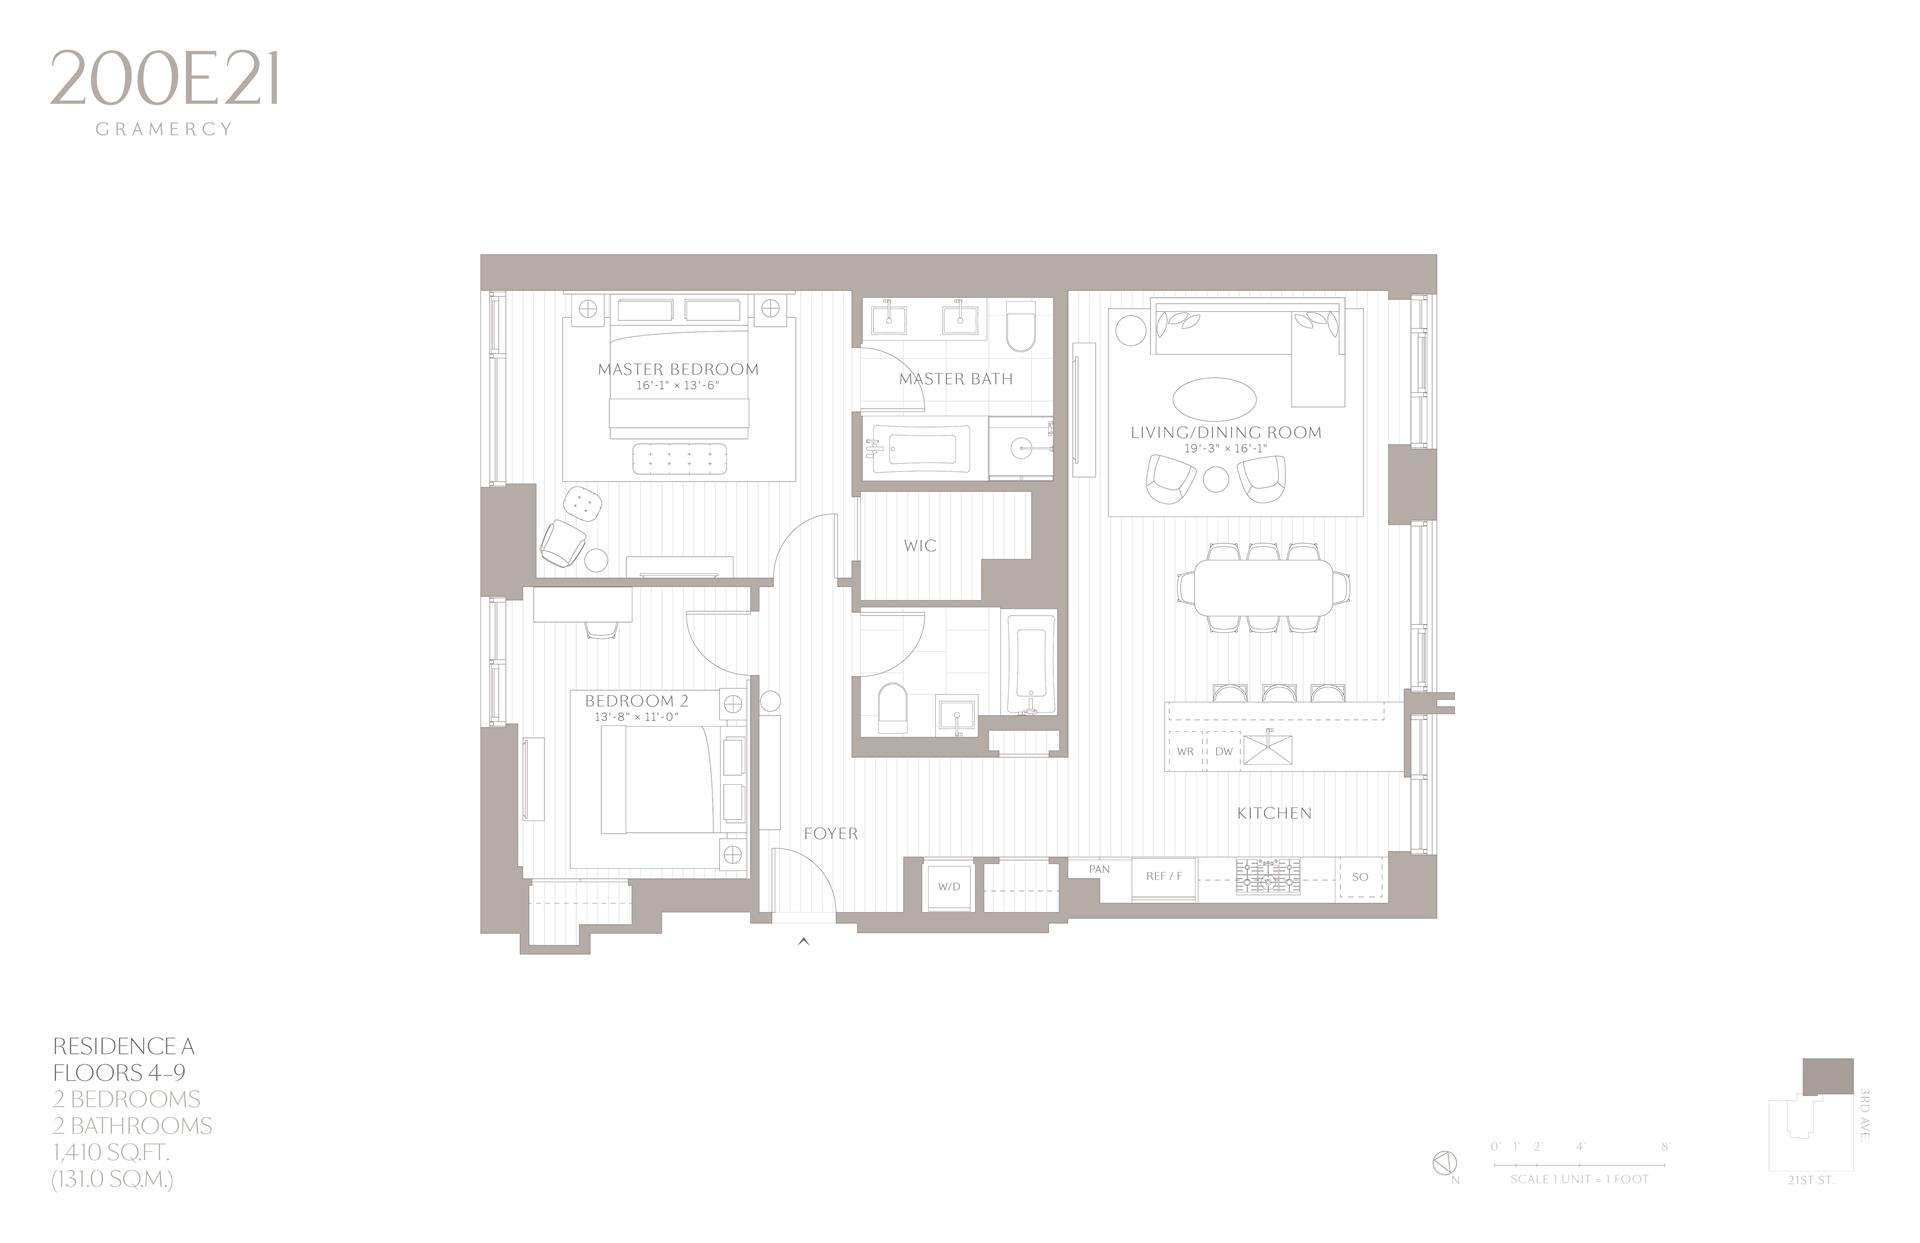 Floor plan of 200 East 21st Street, 4A - Gramercy - Union Square, New York